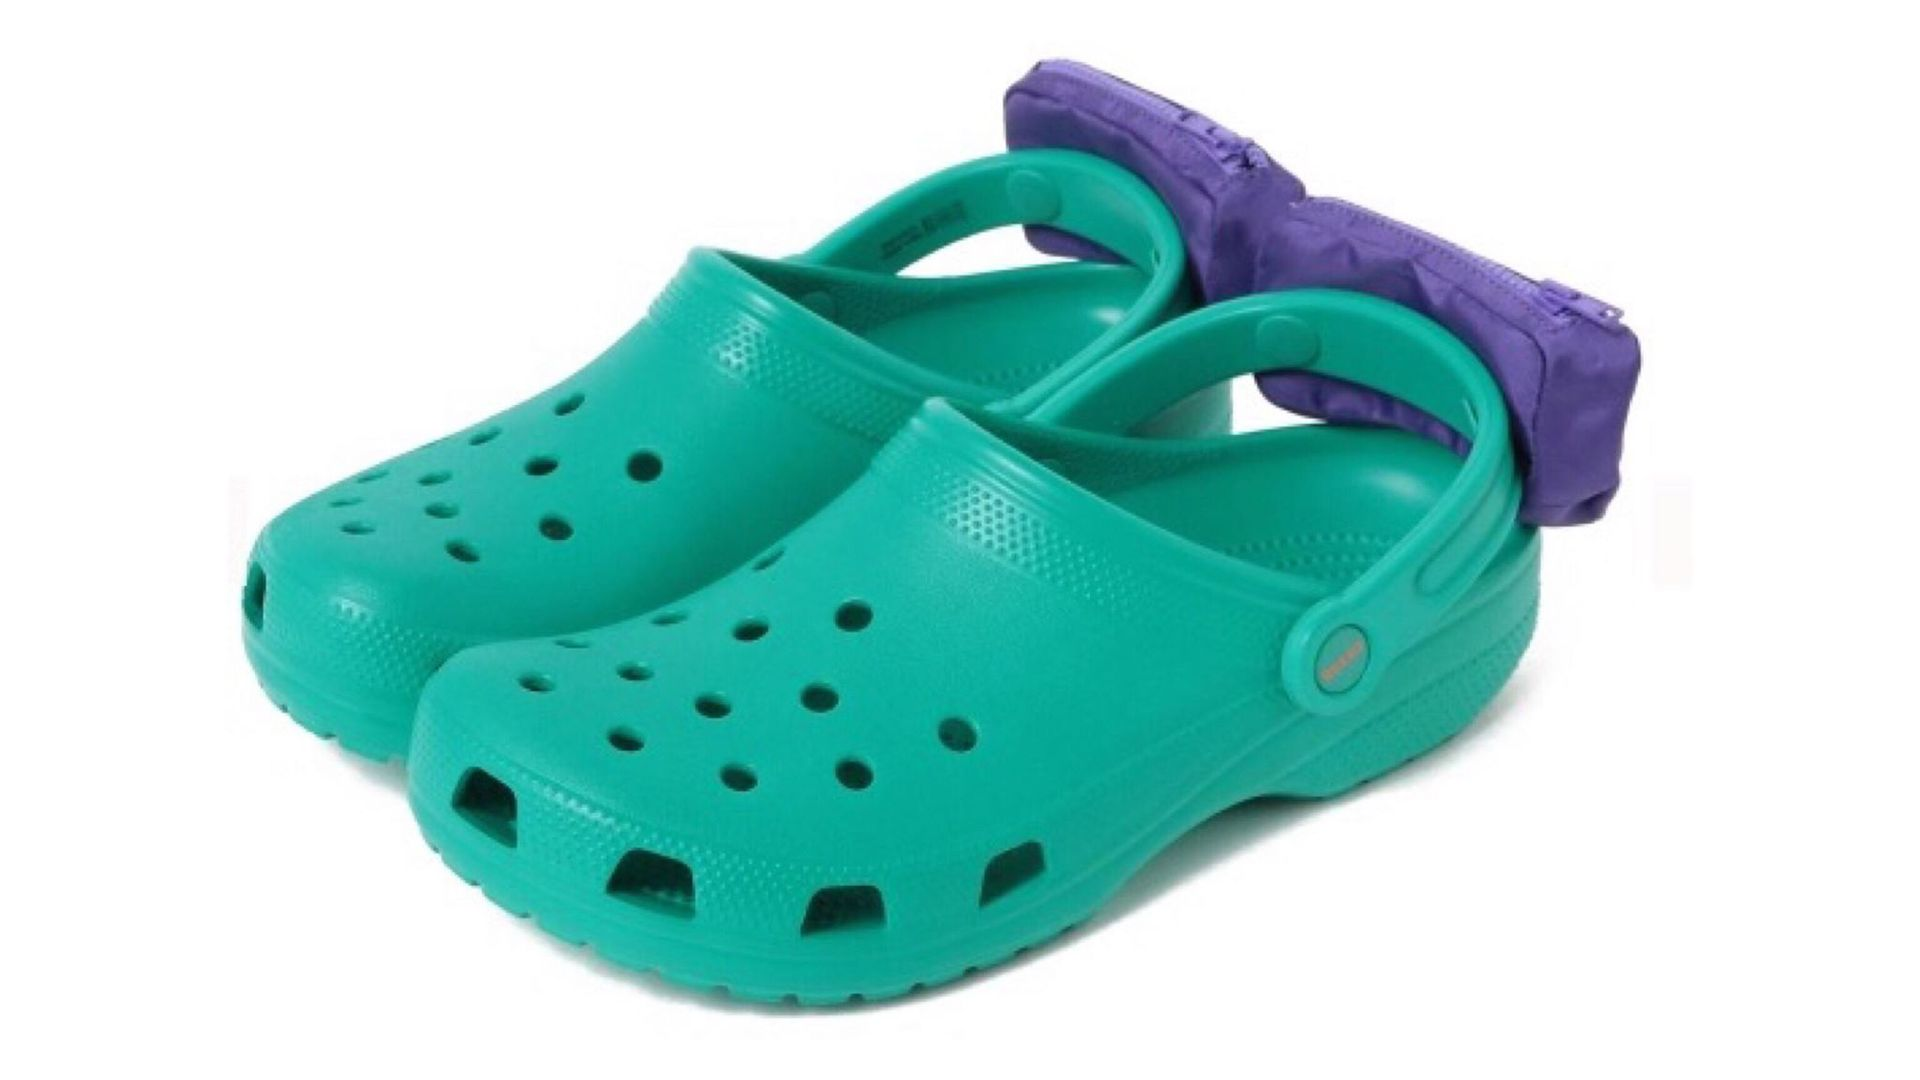 The 80s accessory making Crocs more horrifying